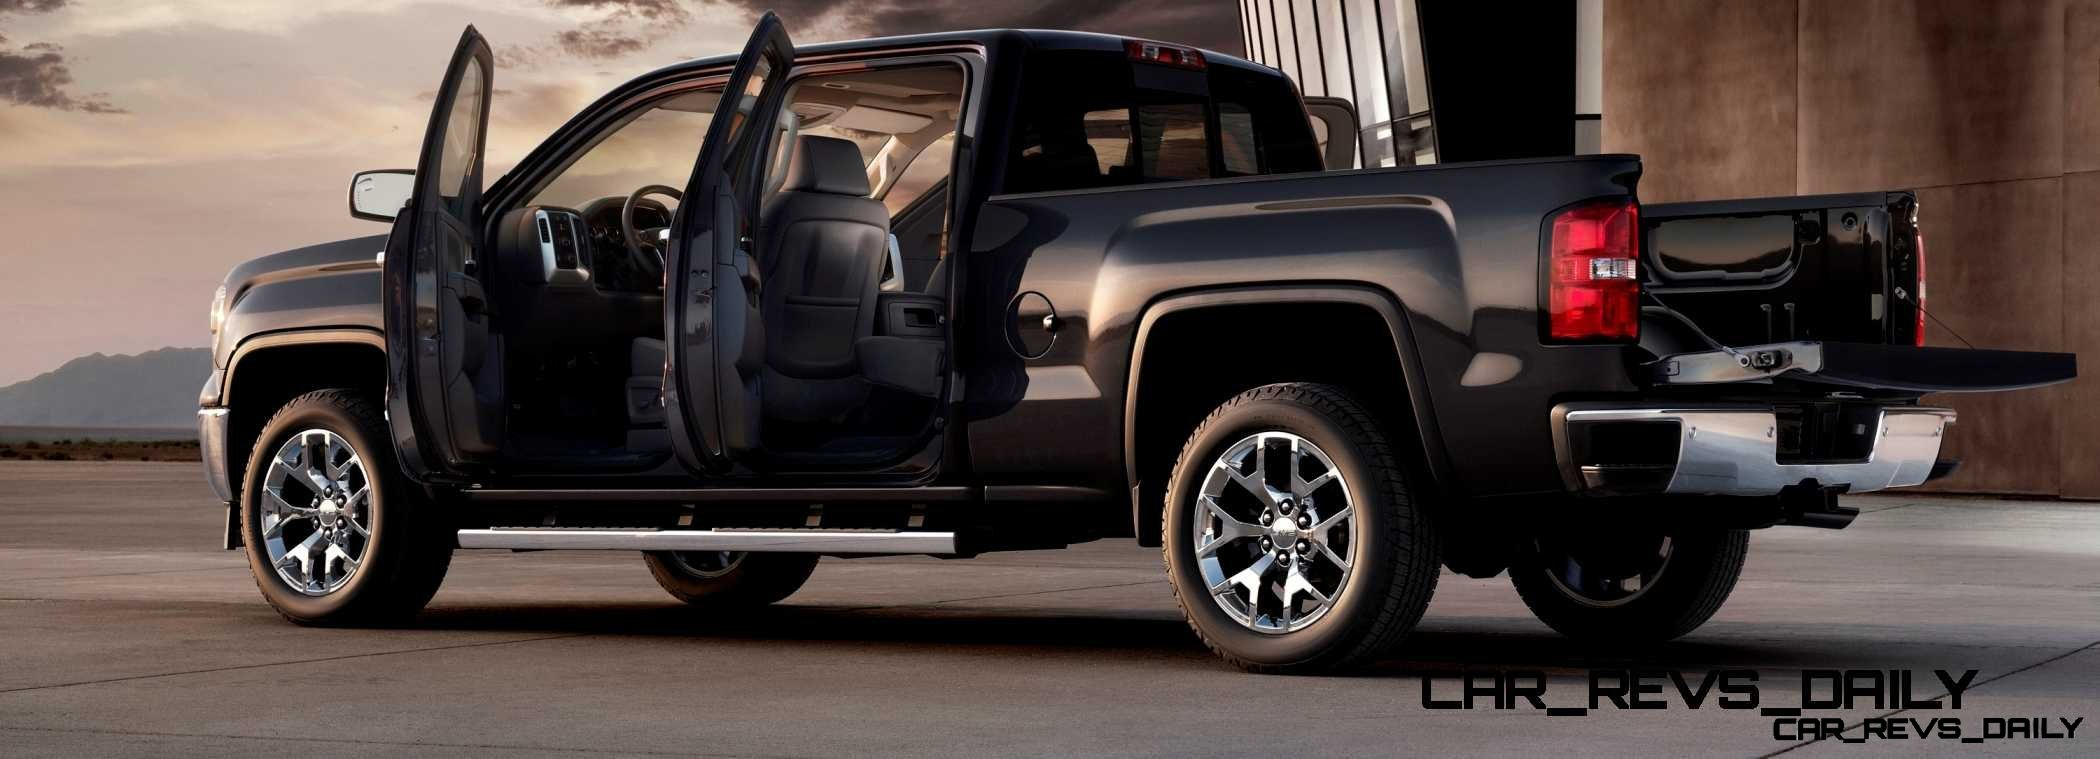 2014 GMC Sierra SLT Crew Cab in Iridium Metallic left rear three quarter shot doors open- on location